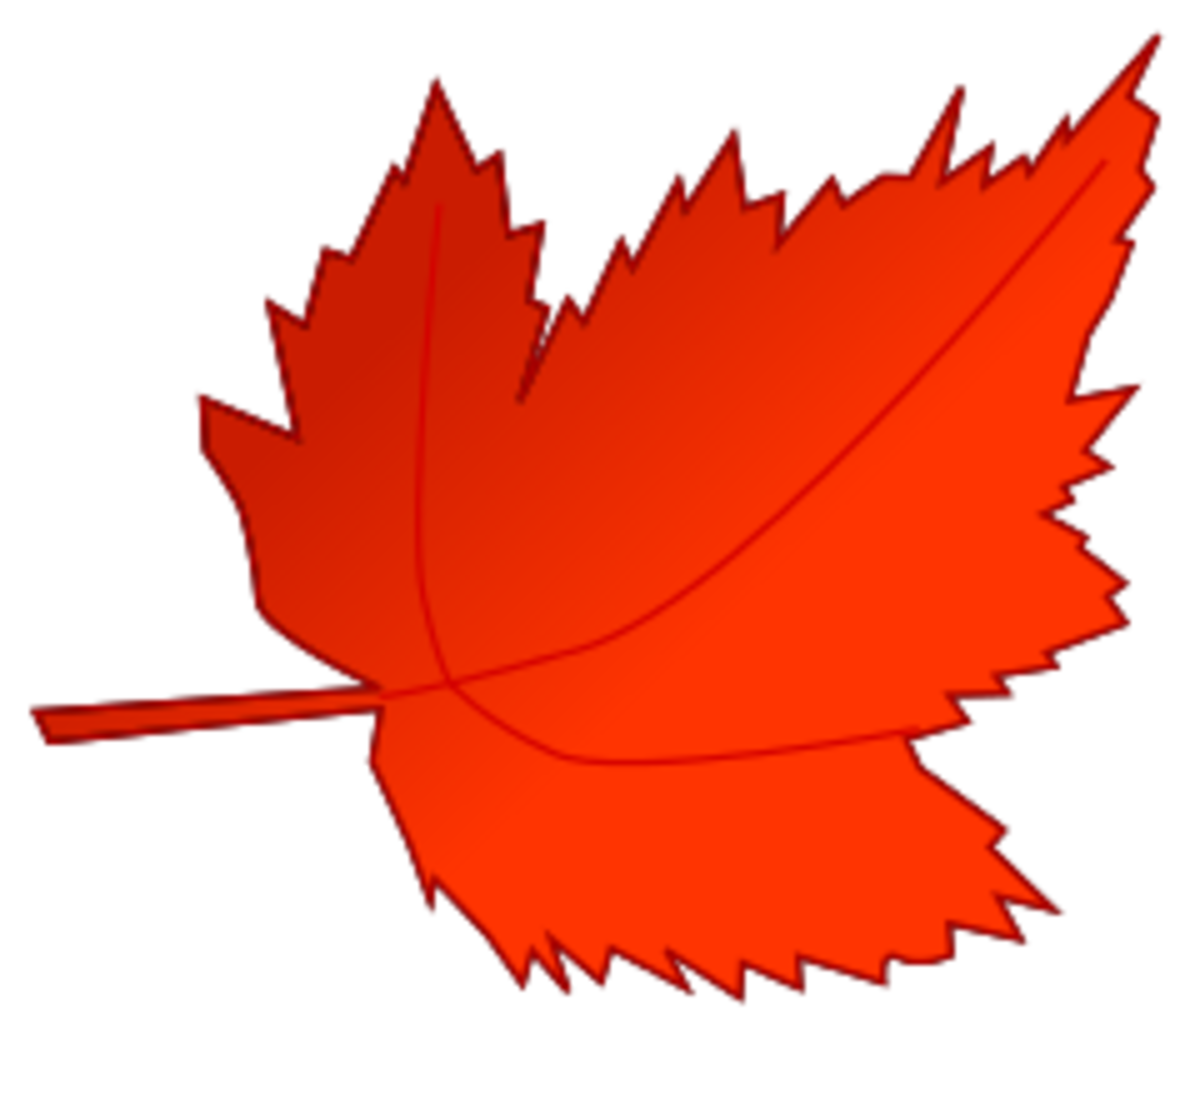 Red Leaf in Fall